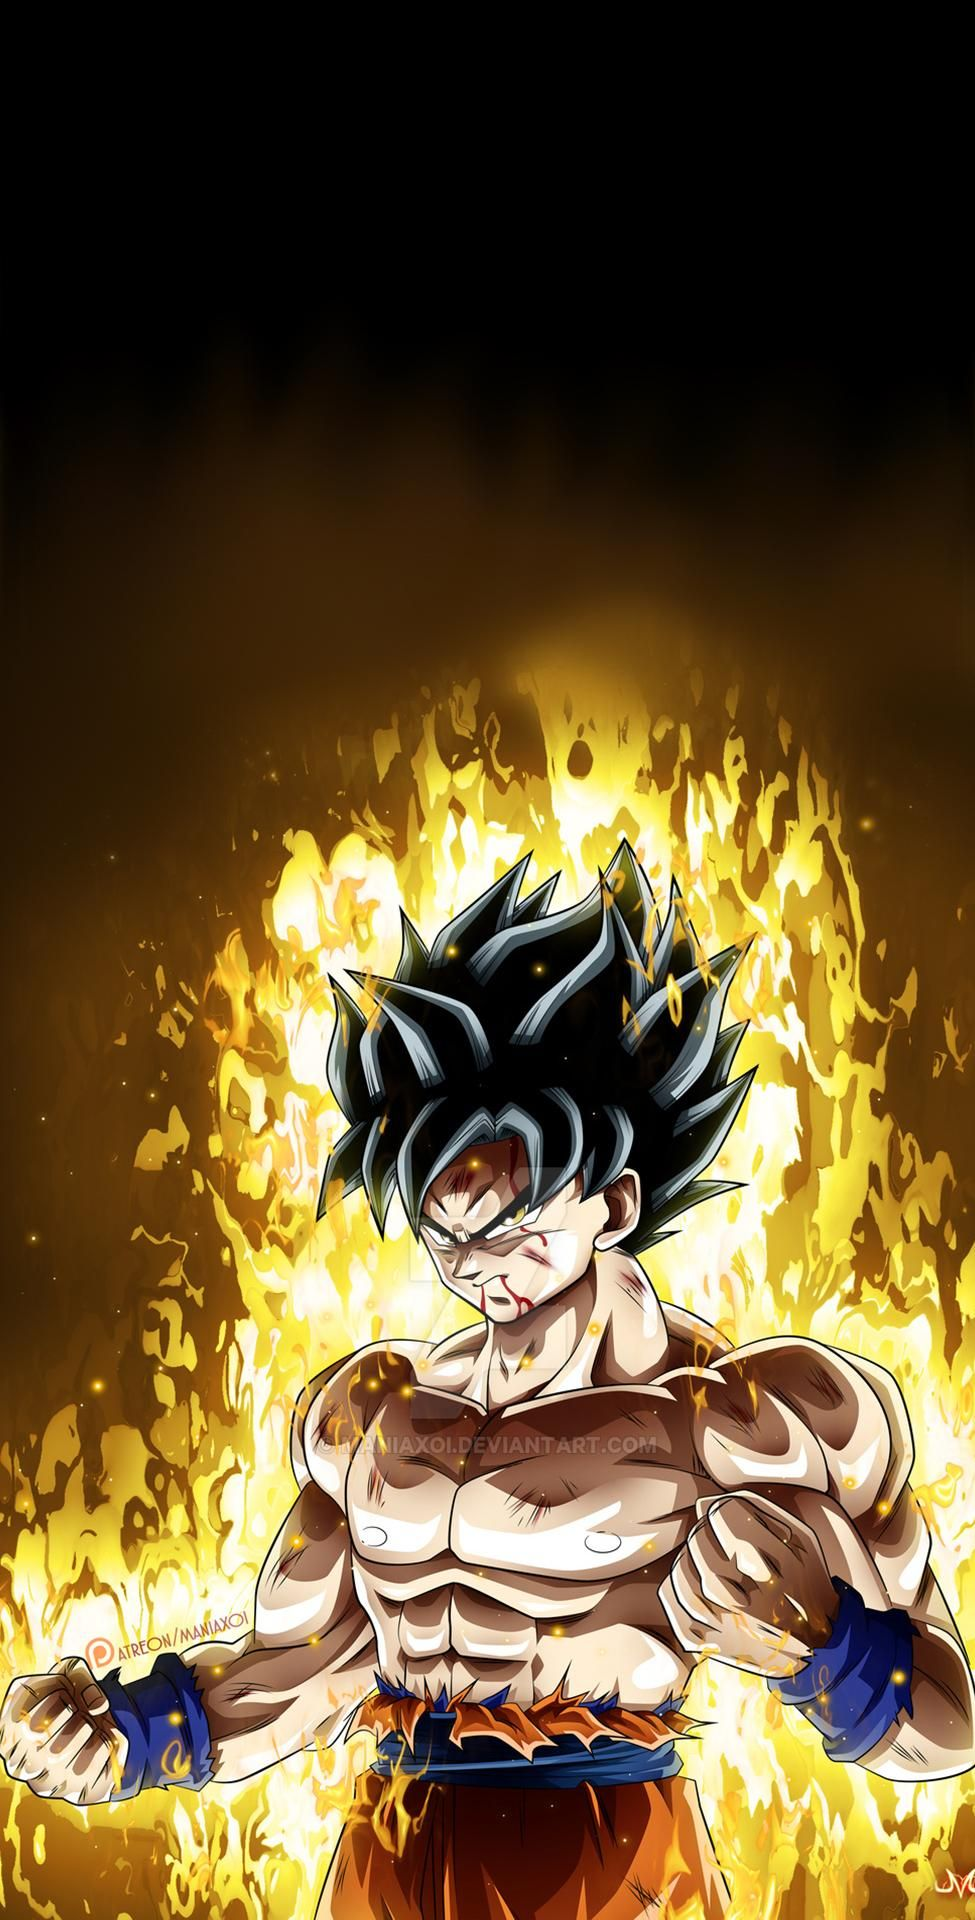 Goku Ultra Instinct 975x1920 Live Wallpaper In Comments Goku